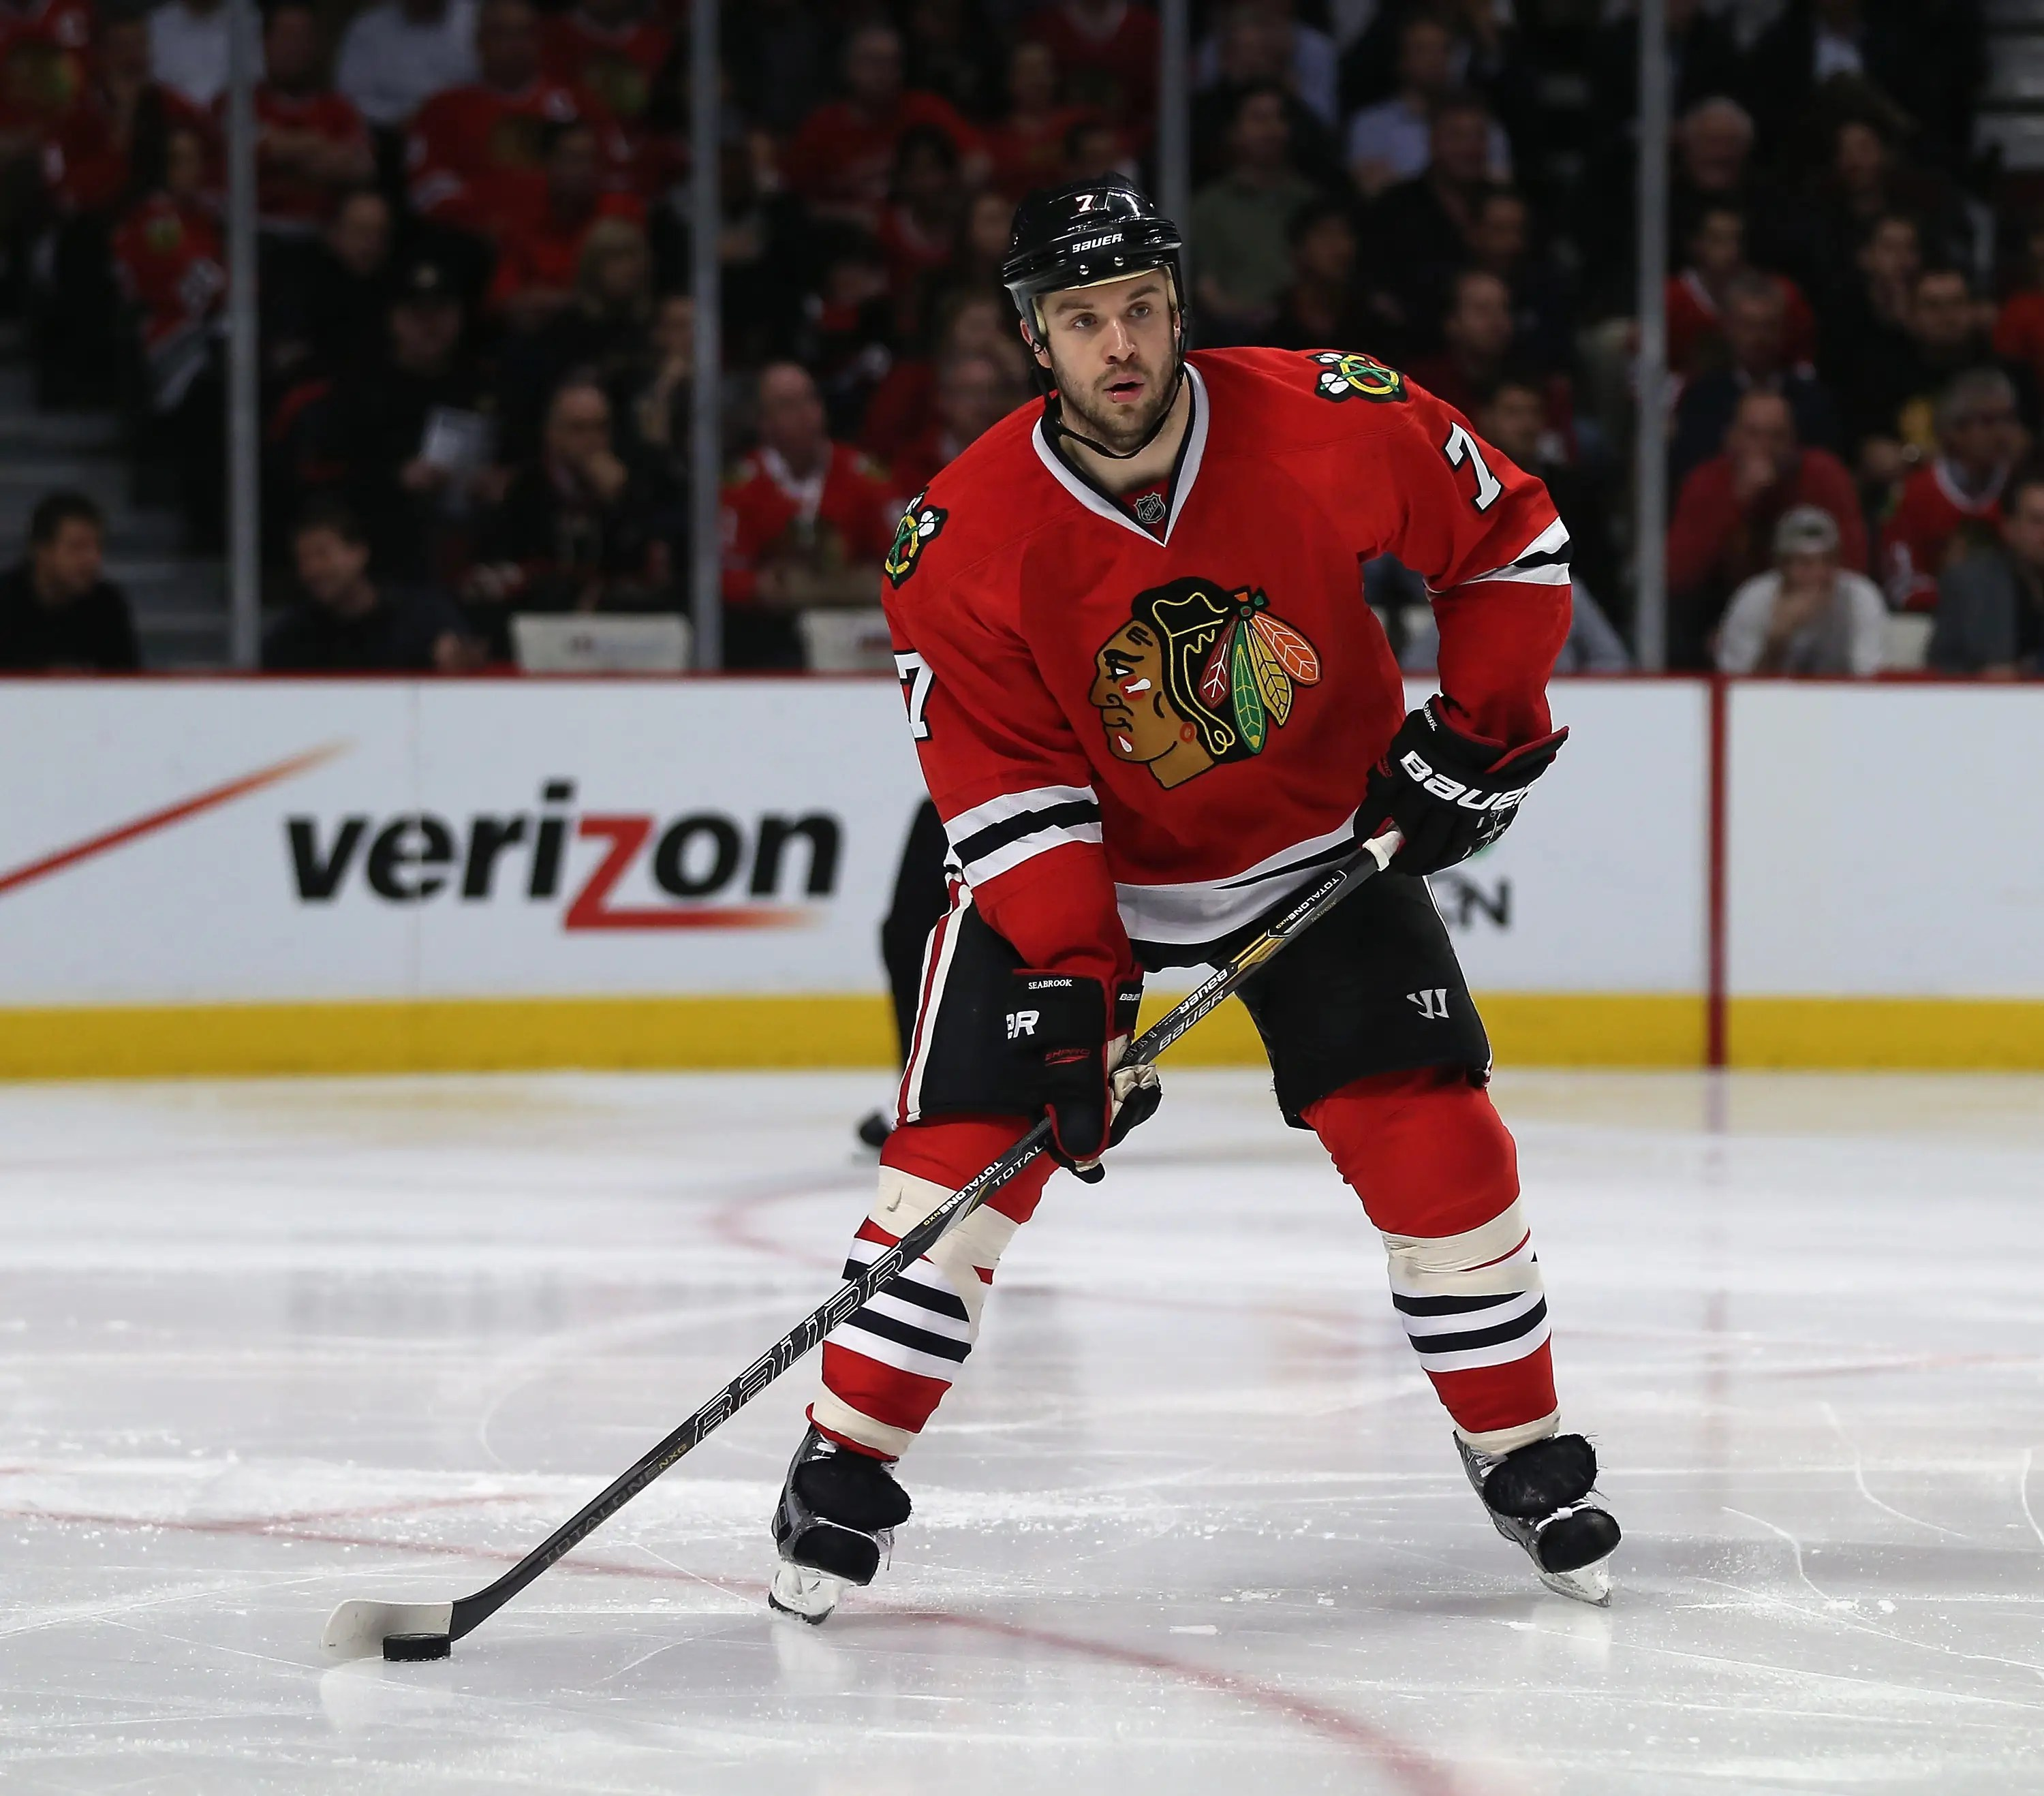 Brent Seabrook of the Chicago Blackhawks